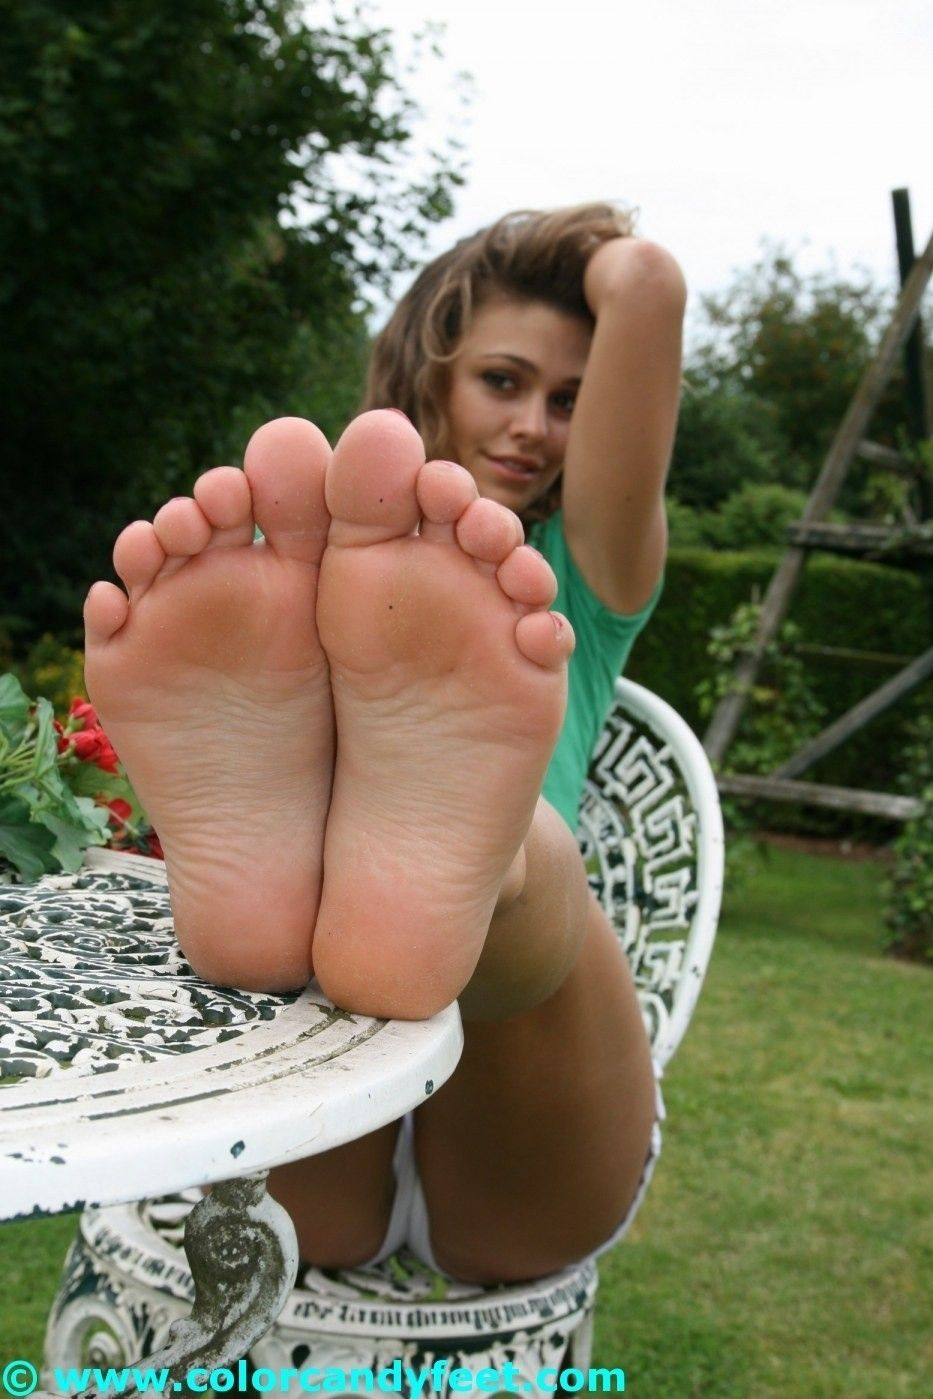 Beautiful 18 Years Old Feet